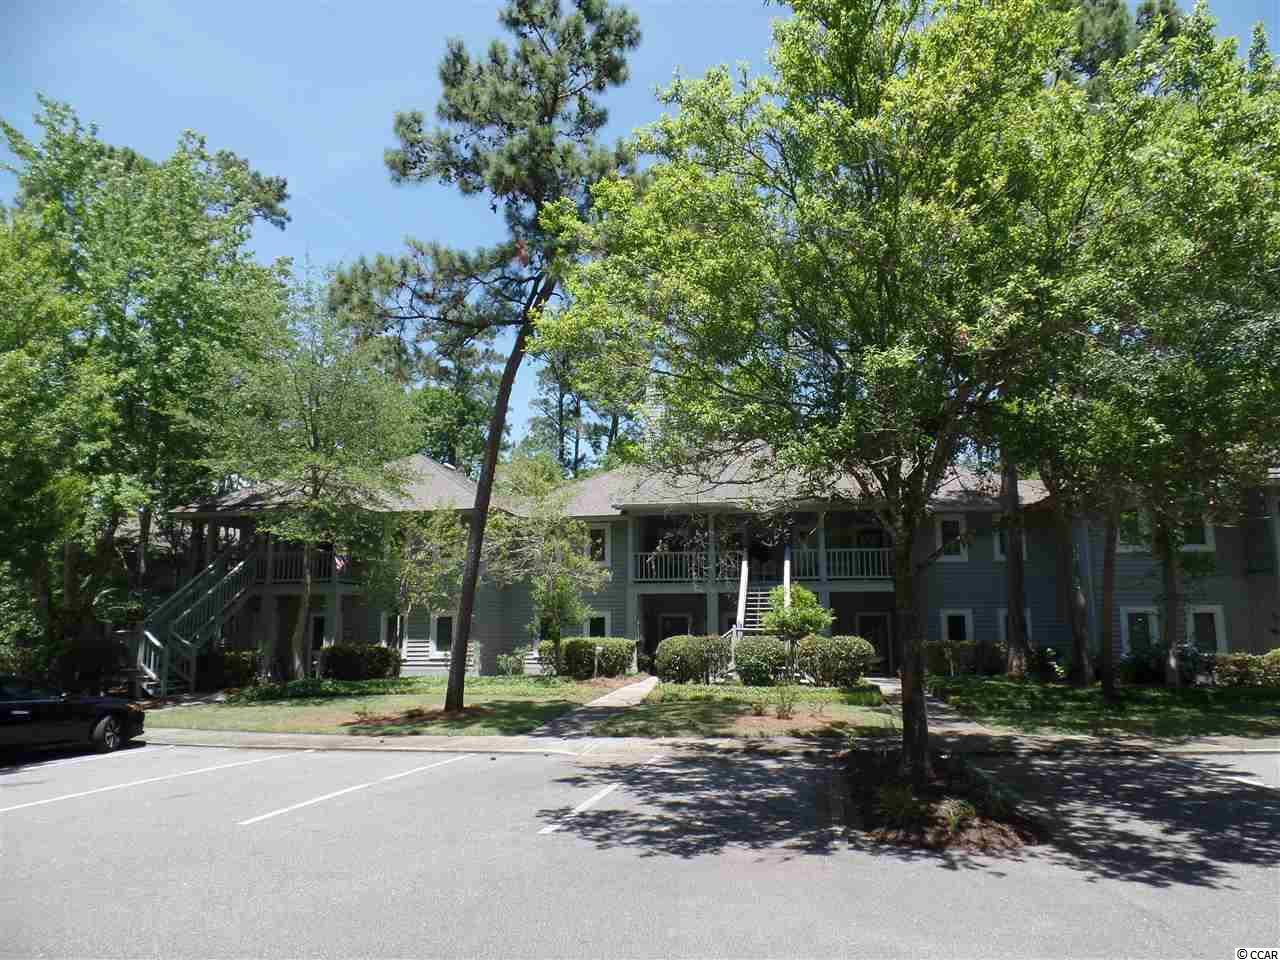 Pristine Teal Lake Charmer with views of the Lake and walking distance to one of Tidewaters many swimming pools!  This unit has carpet and tile flooring,water heater 2018, HVAC unit 2019  washer dryer within past year and very well maintained  fresh look.  Tidewater is a gated community with guards at the gate 24/7 ,multiple pools, clubhouse, firtness center,tennis courts,public golf course,restaurant within community and its own private Beach Cabana.  Literally minutes to Cherry Grove Beach!!!!!!! Last but not least great shopping in N Myrtle Beach and restaurants galore!!